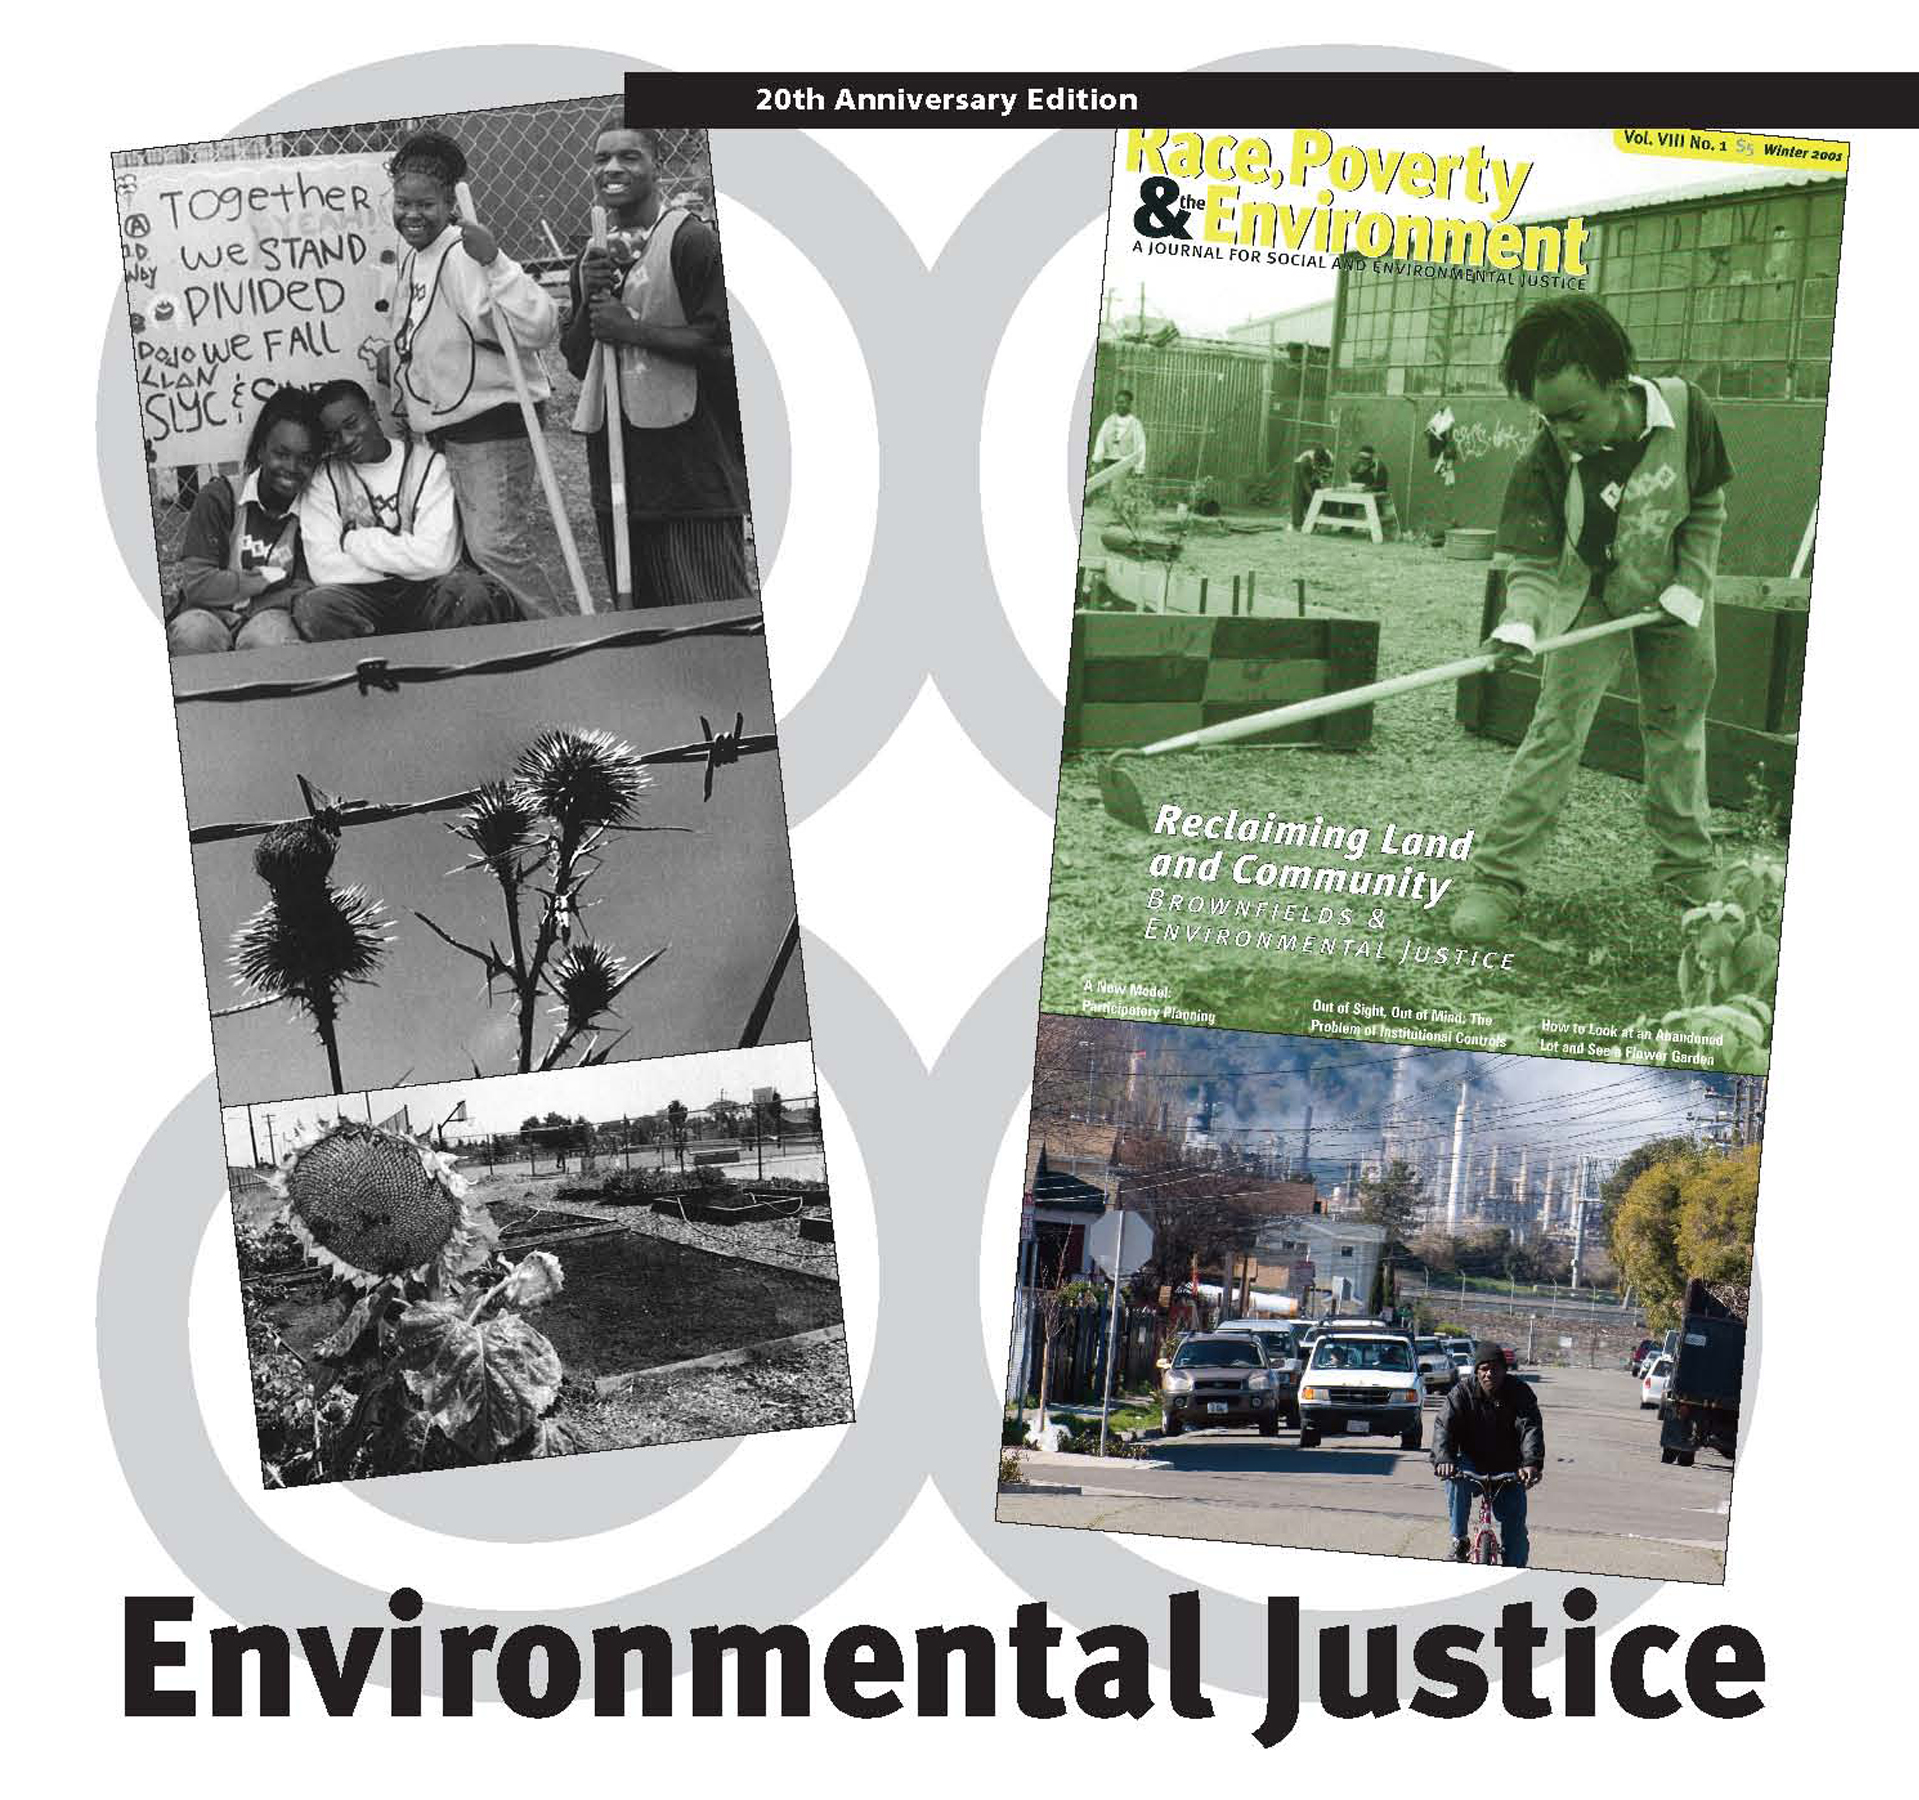 environmental racism and classism at issue paperback